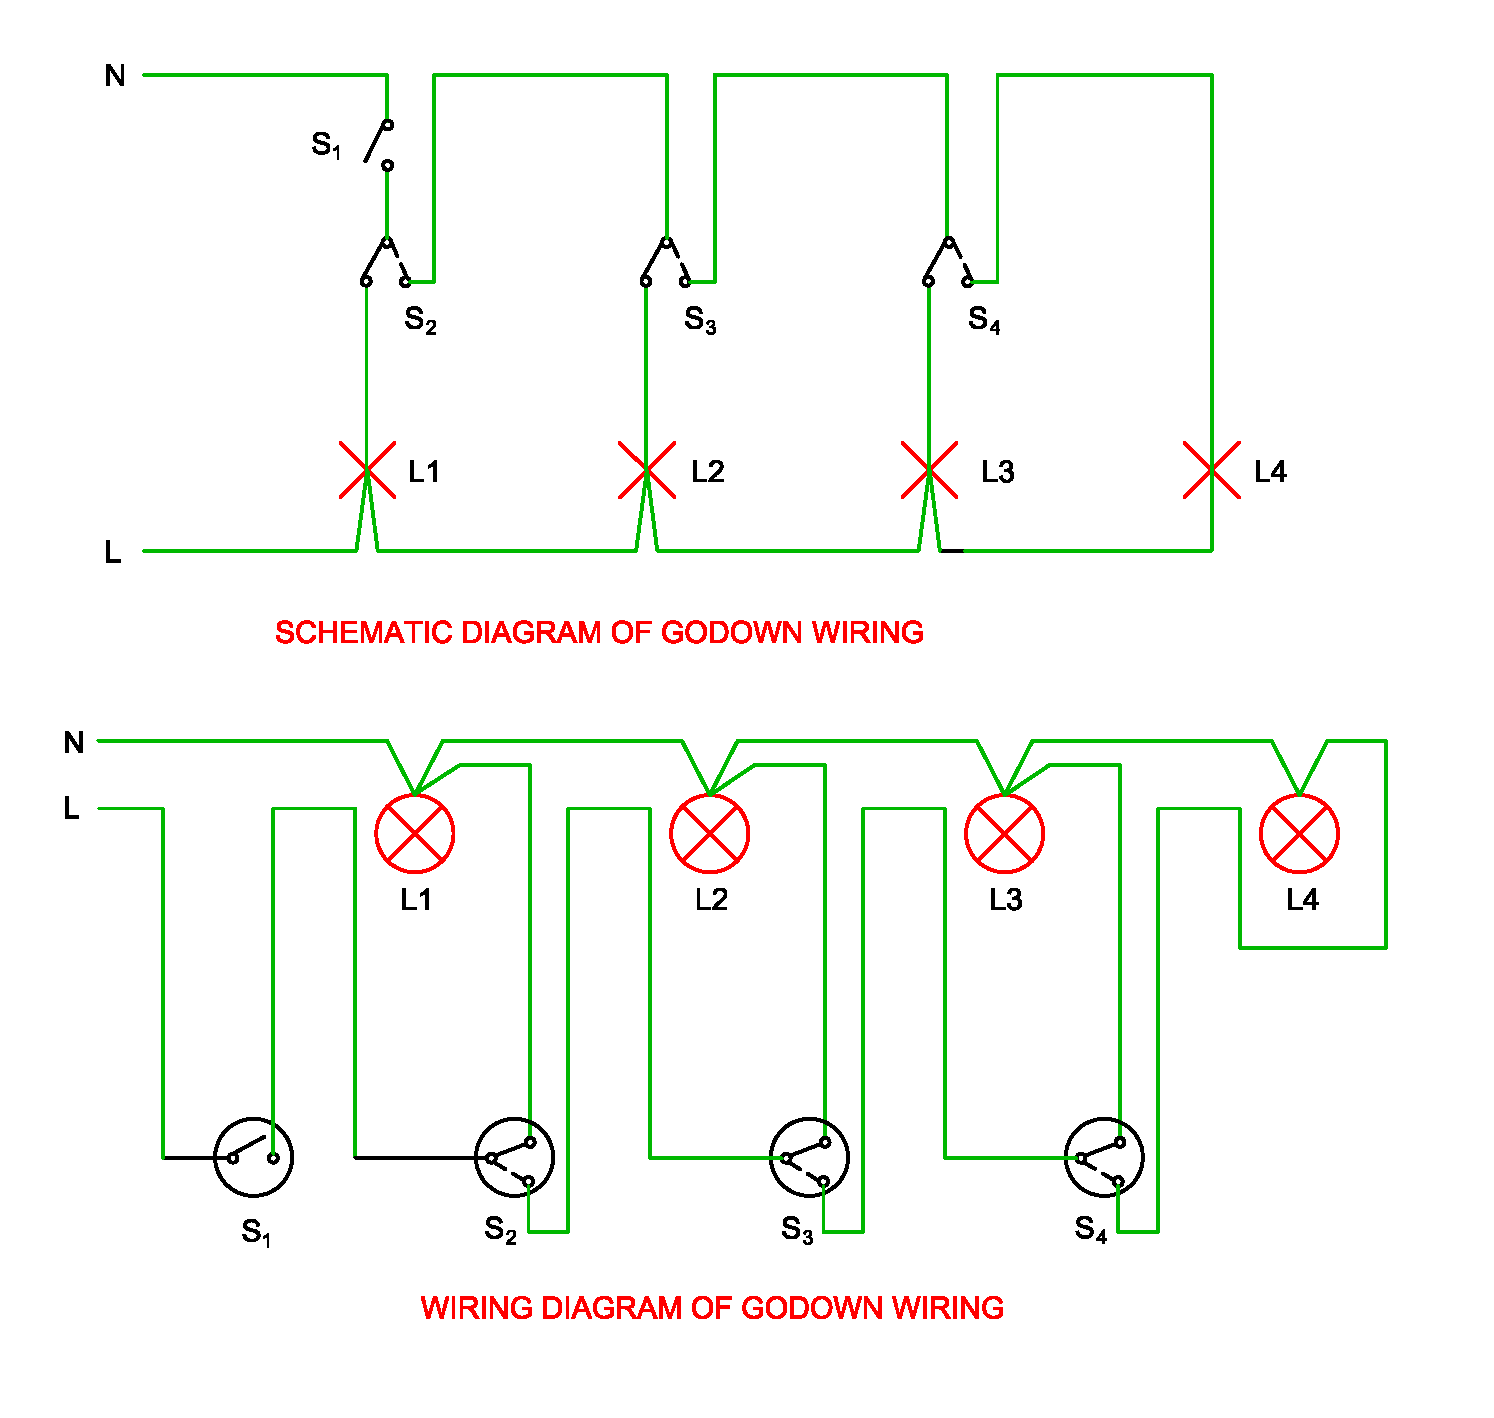 schematic and wiring diagram of go down wiring electrical revolution rh myelectrical2015 com